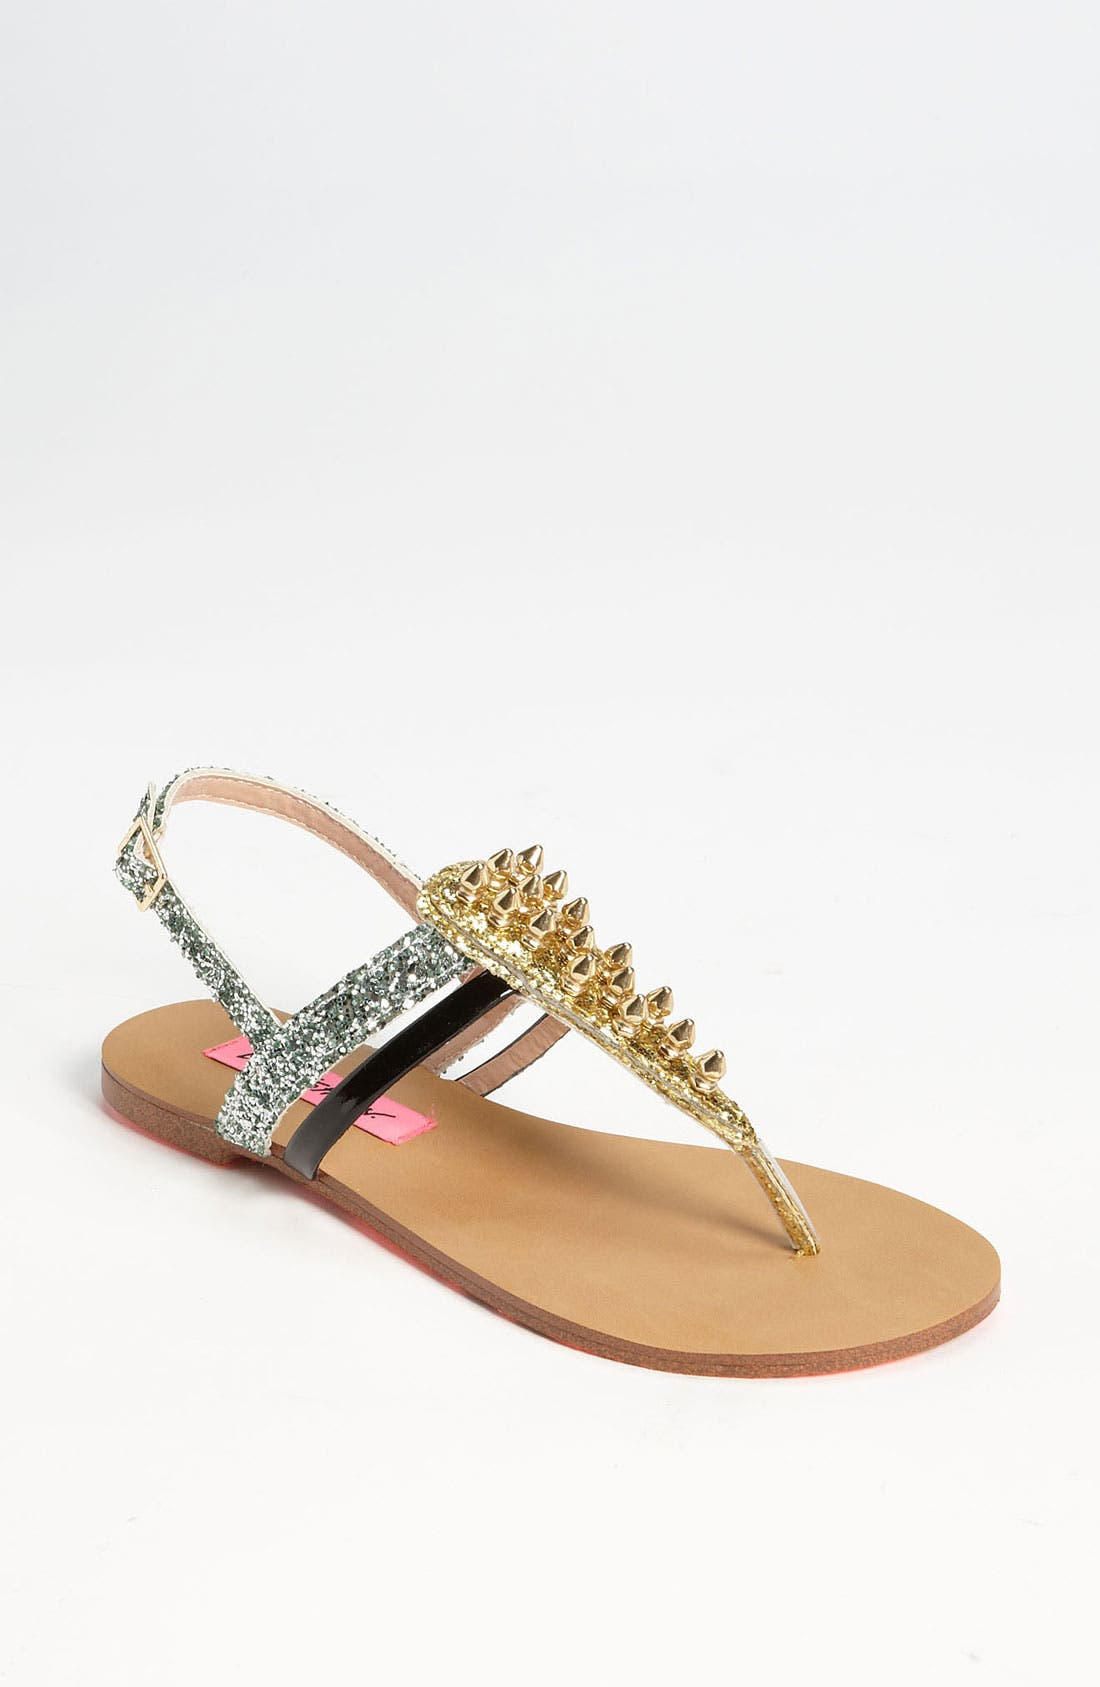 Alternate Image 1 Selected - Betsey Johnson 'Corii' Sandal